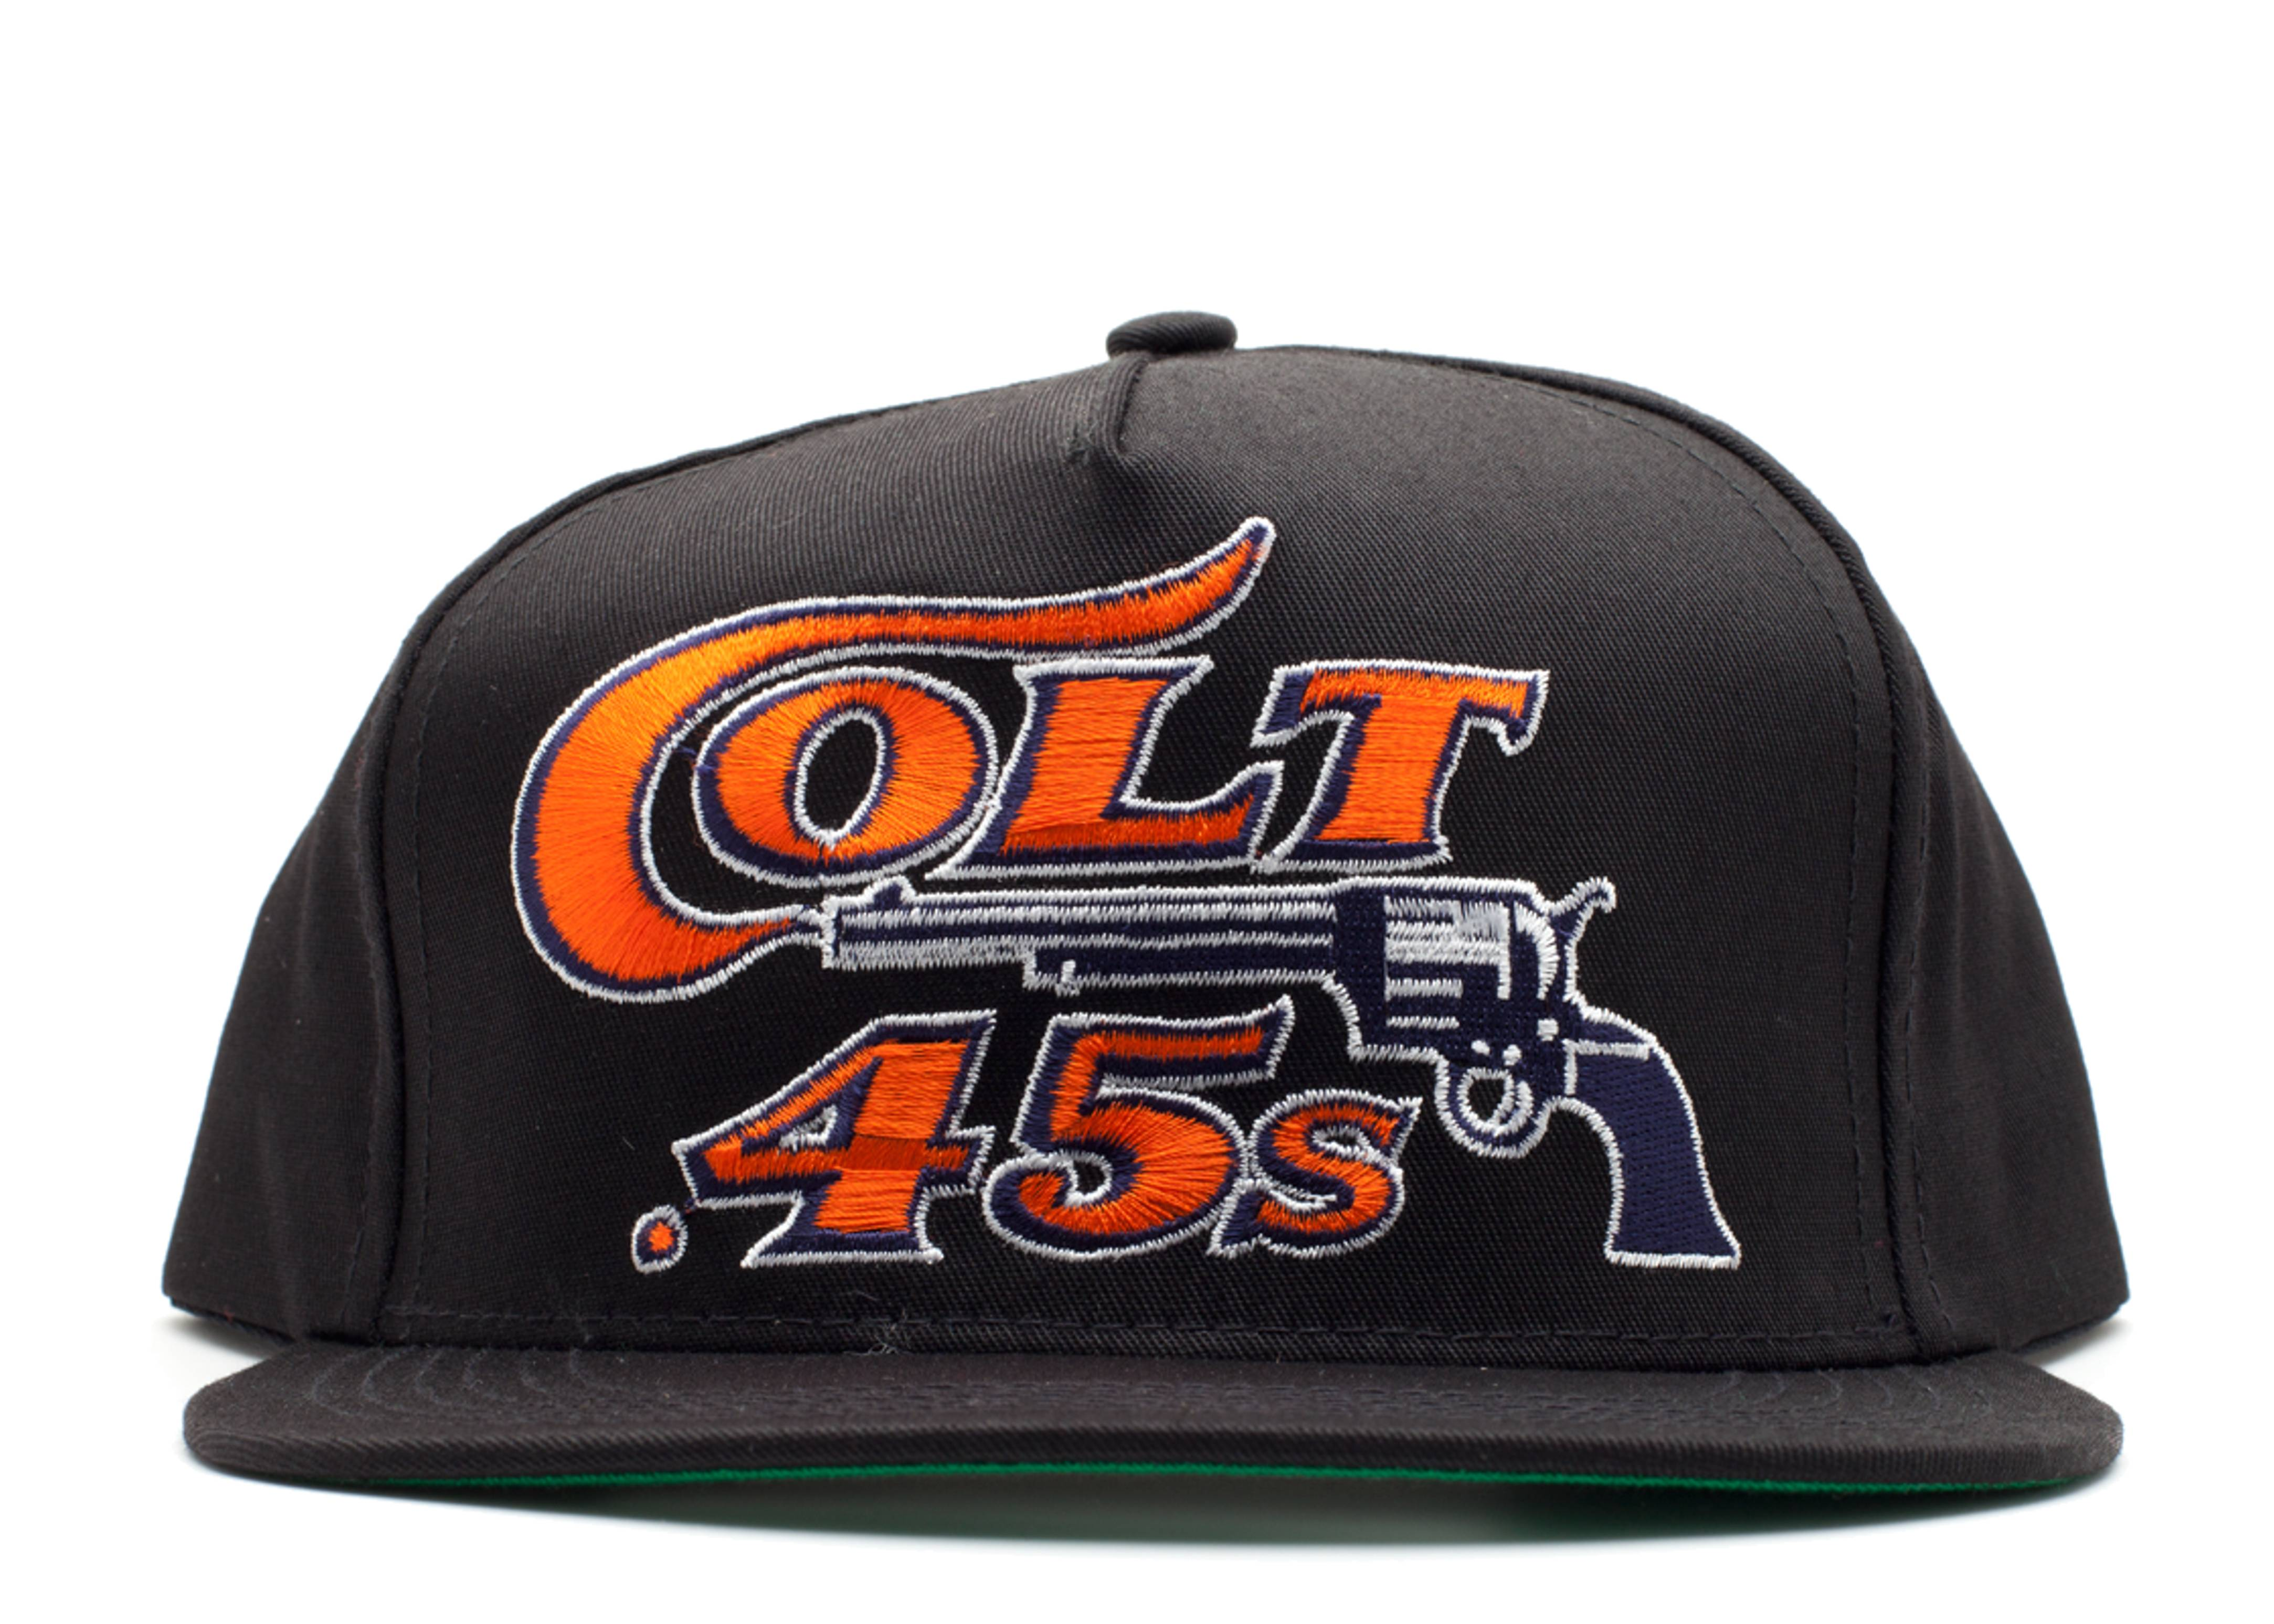 e90743cd2c2 Colt .45 Snap-back - Vintage - retro0146 - black